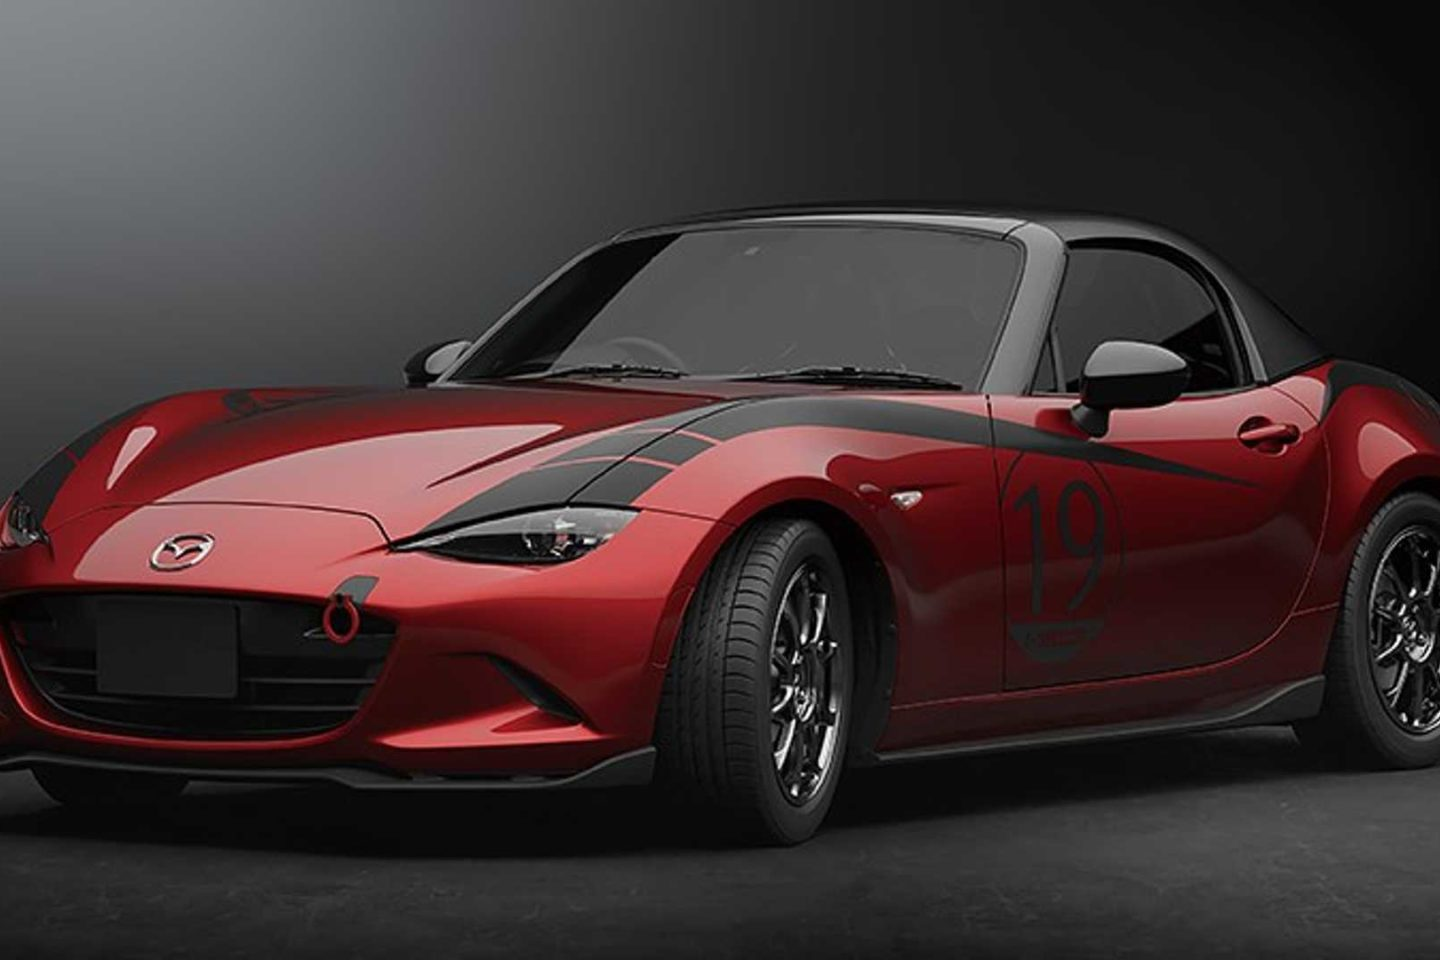 Mazda Roadster Drop-Head Coupe